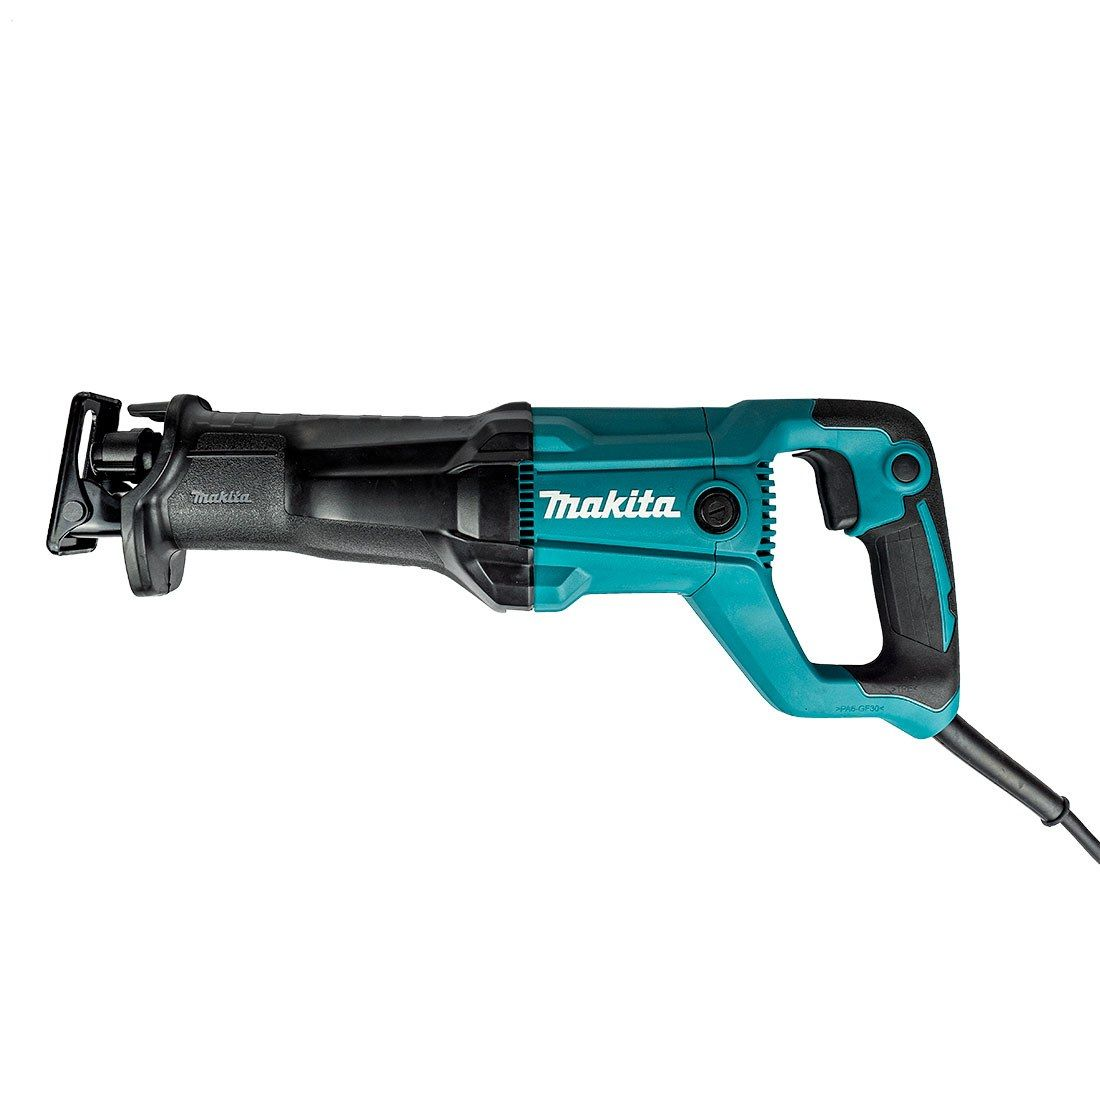 Makita Sabre Saw 240volt MAKJR3051TK | 30mm stroke with cut capacity of 255mm in wood and 130mm in pipe | toolforce.ie